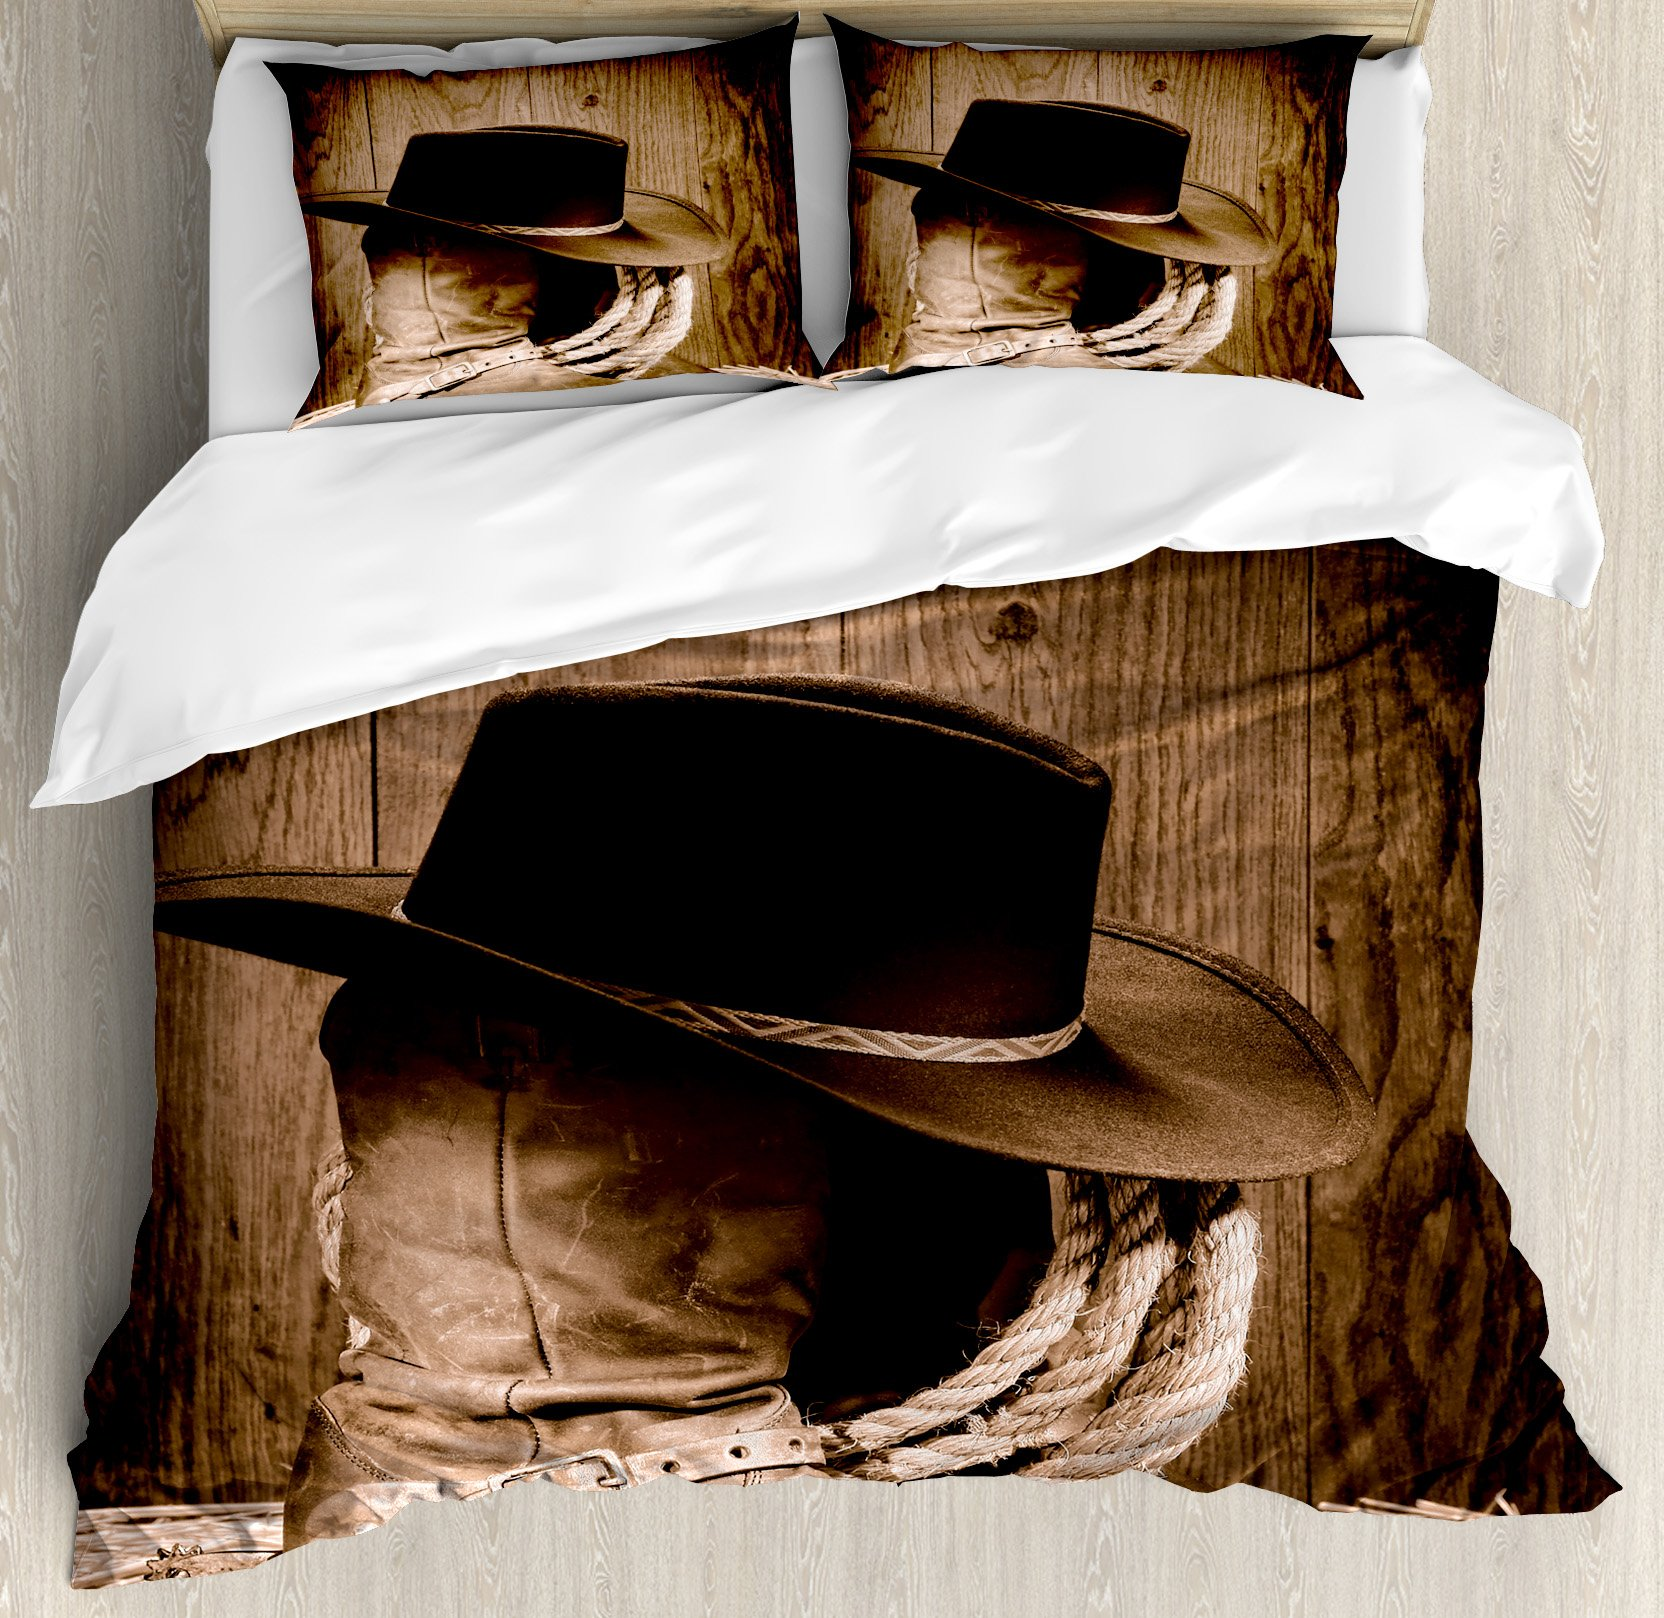 Western Duvet Cover Set King Size by Ambesonne, Wild West Themed Cowboy Hat and Old Ranching Rope On Wooden Display Rodeo Cowboy Style, Decorative 3 Piece Bedding Set with 2 Pillow Shams, Brown